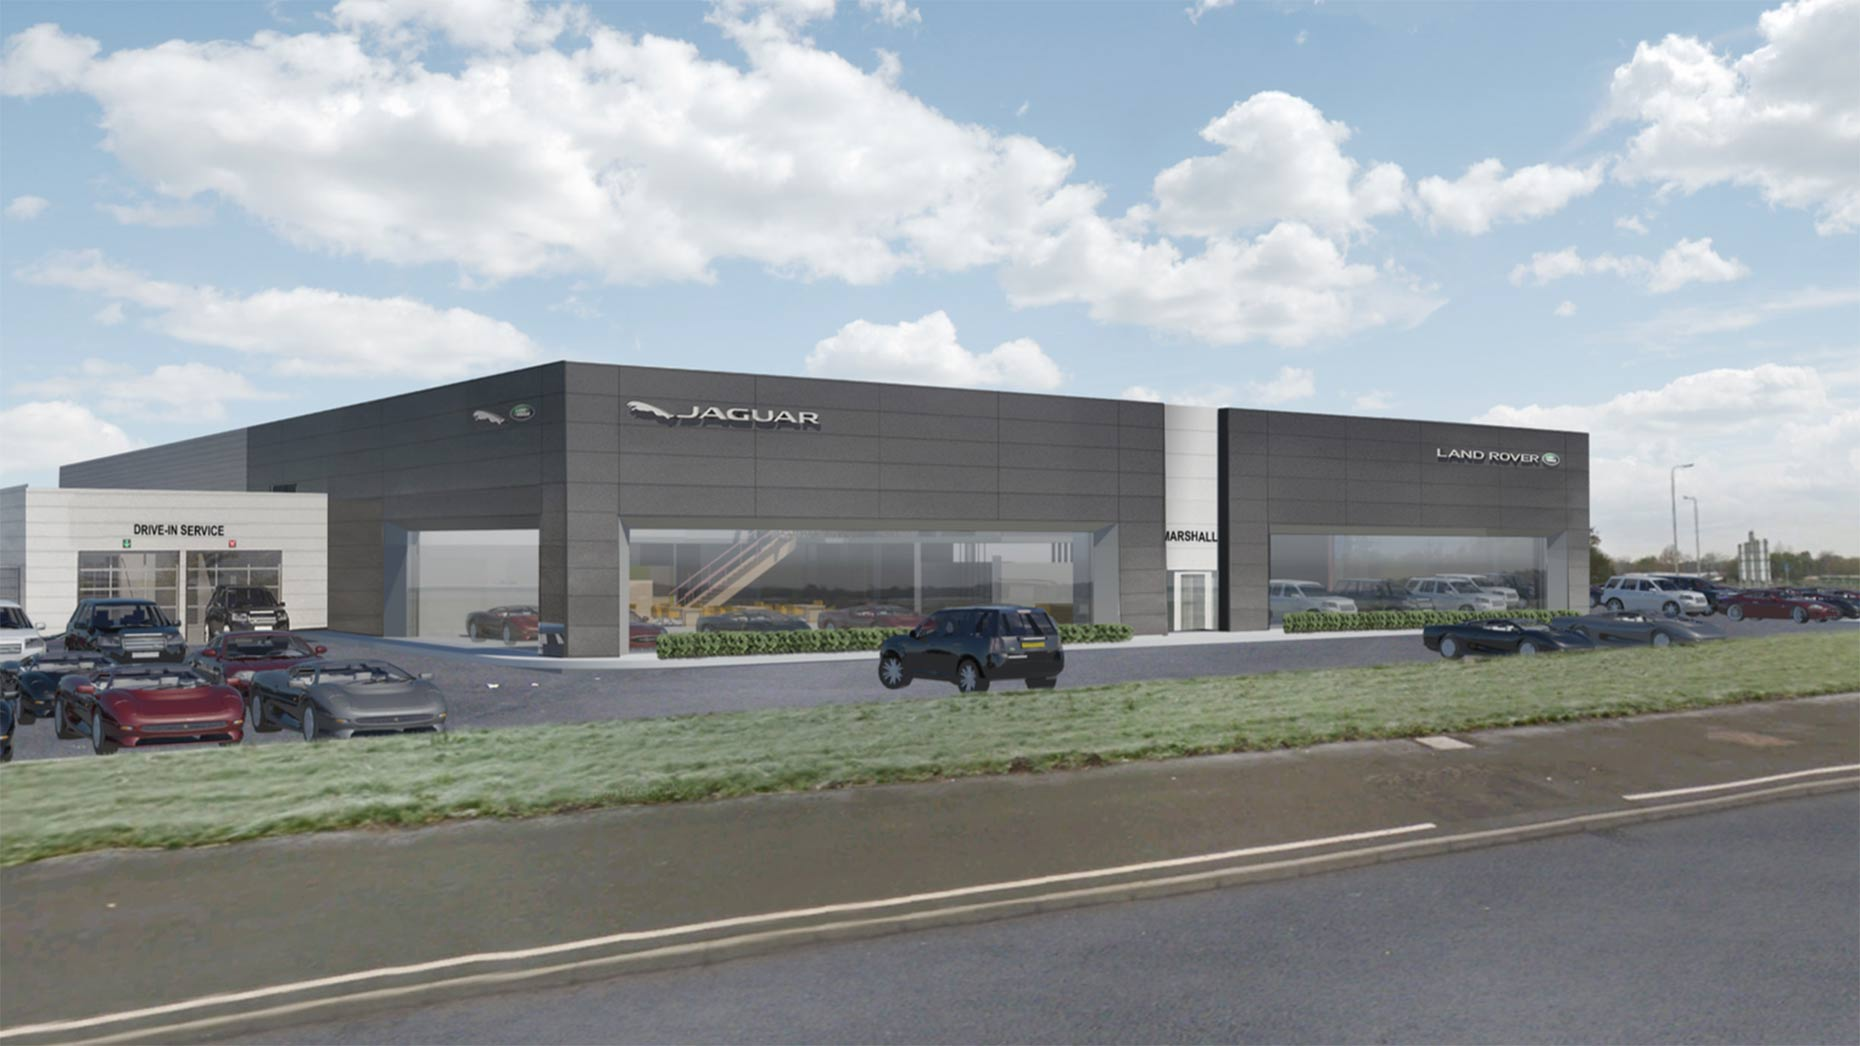 plans revealed for new jaguar land rover dealership, lincoln's